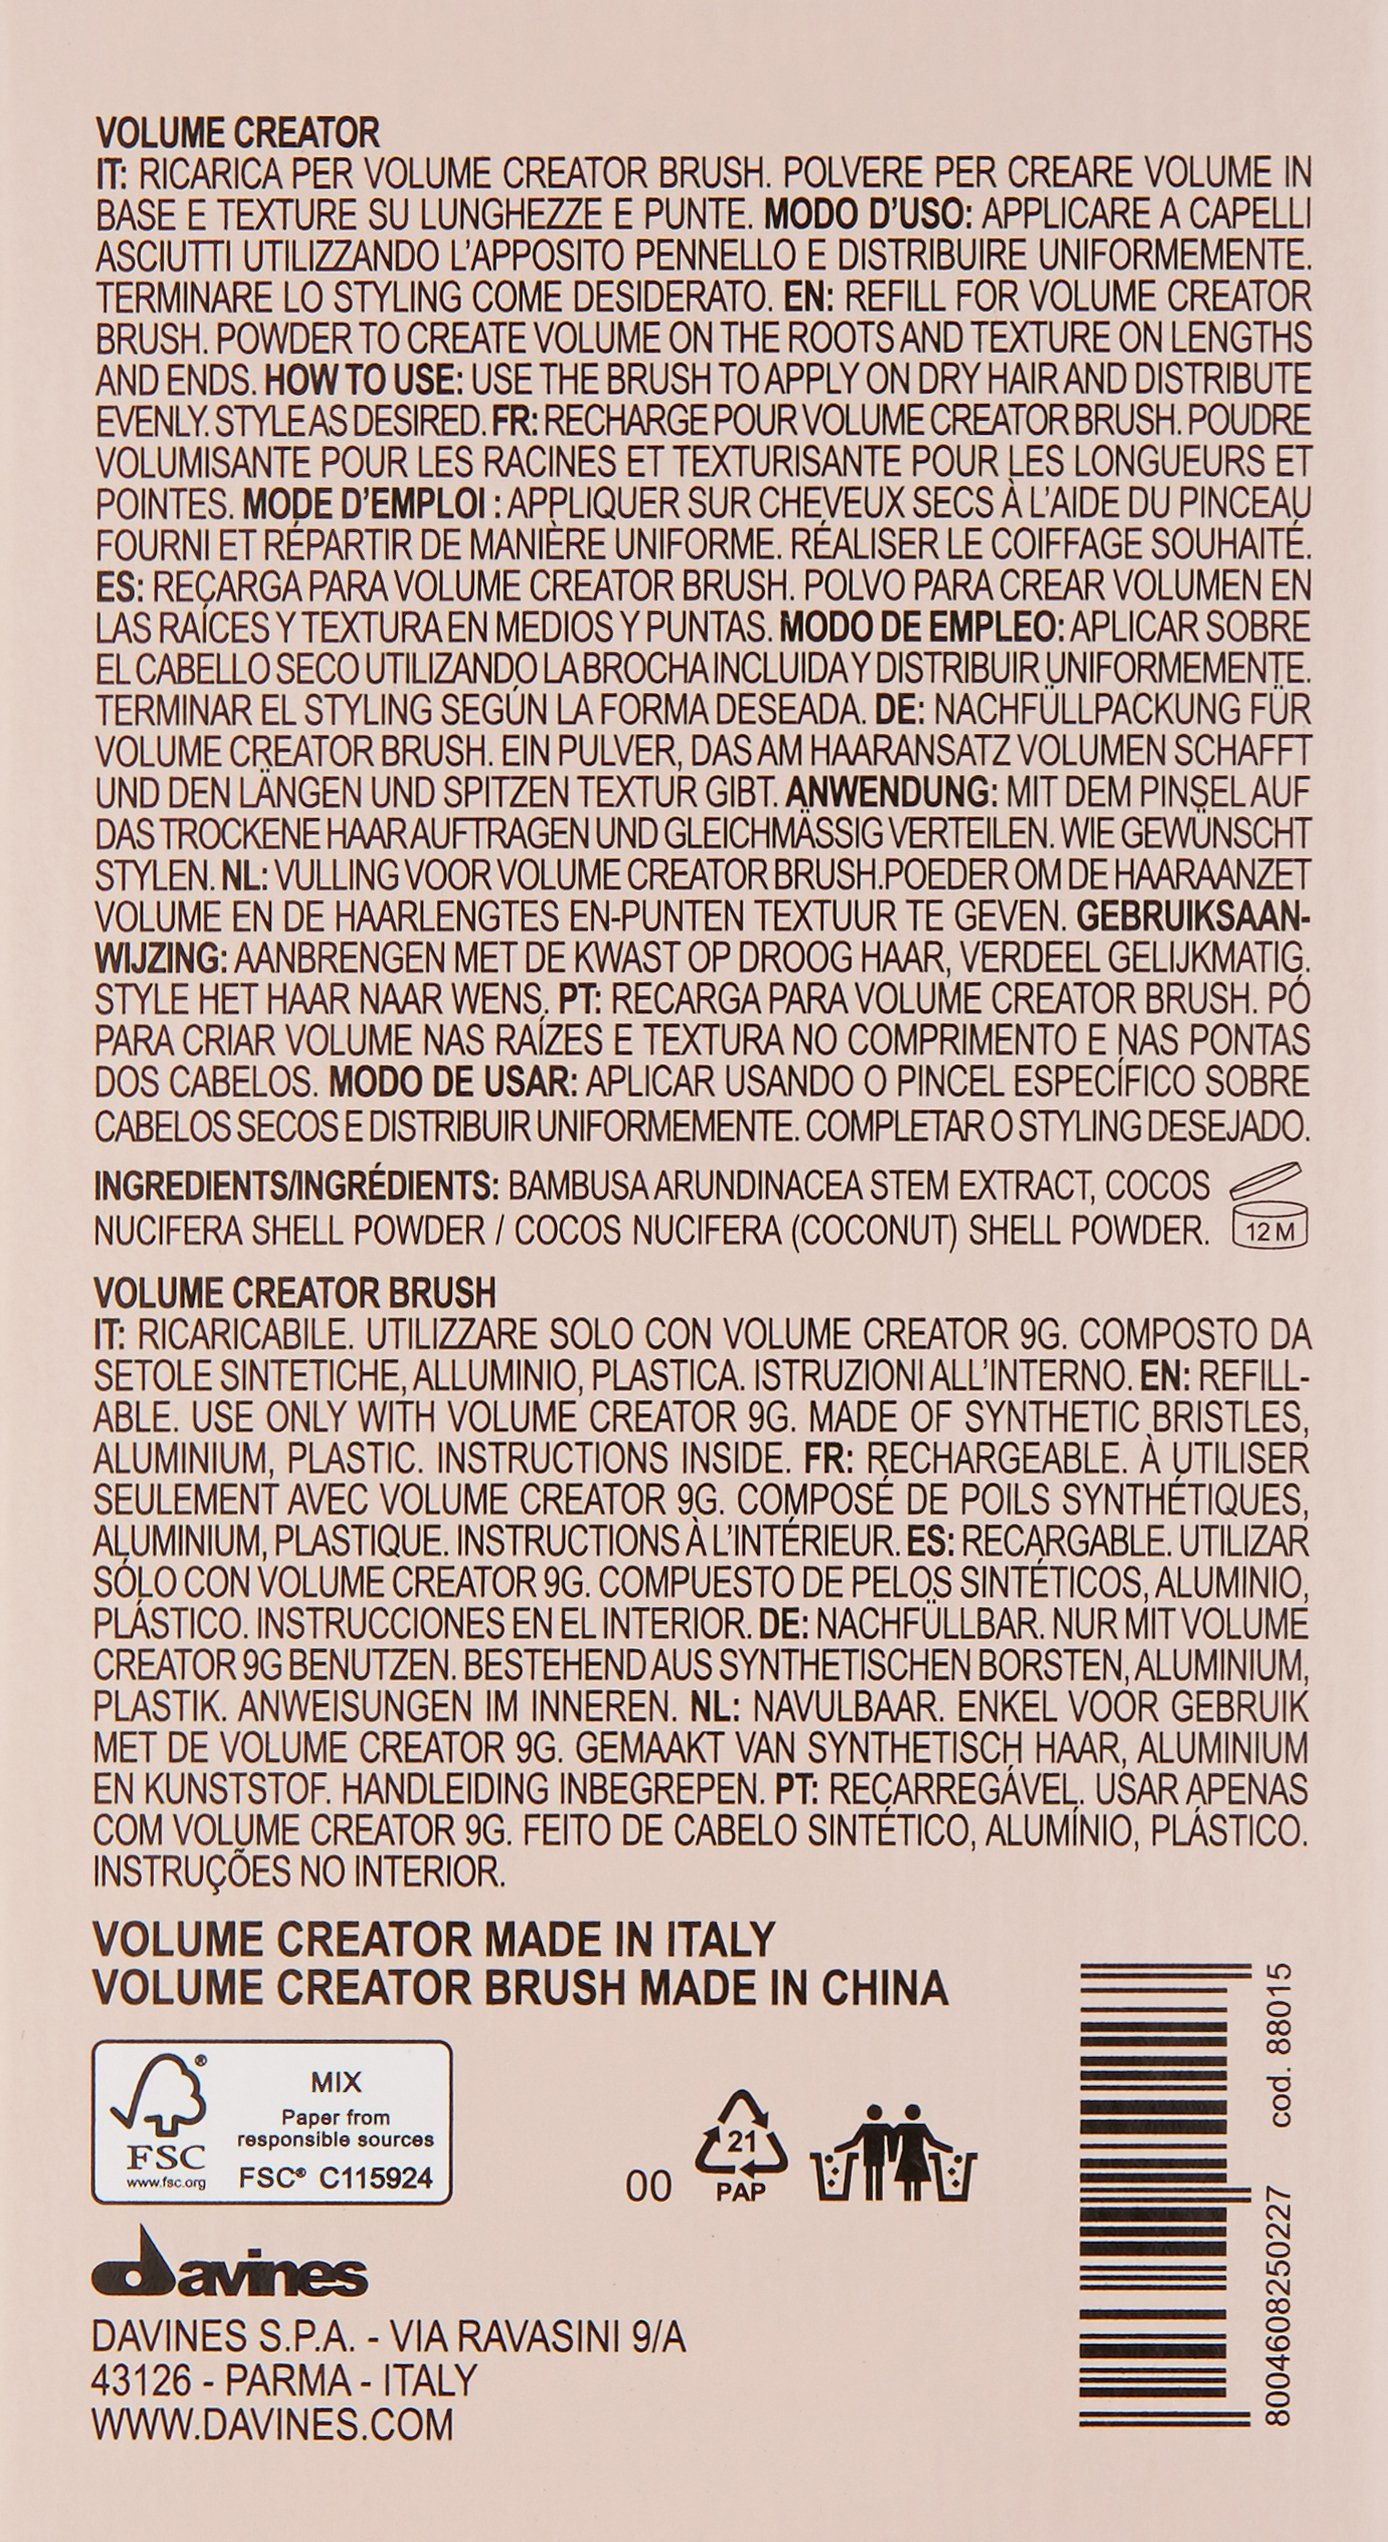 Davines Duo Pack, Your Hair Assistant Volume Creator and Brush by Davines (Image #2)